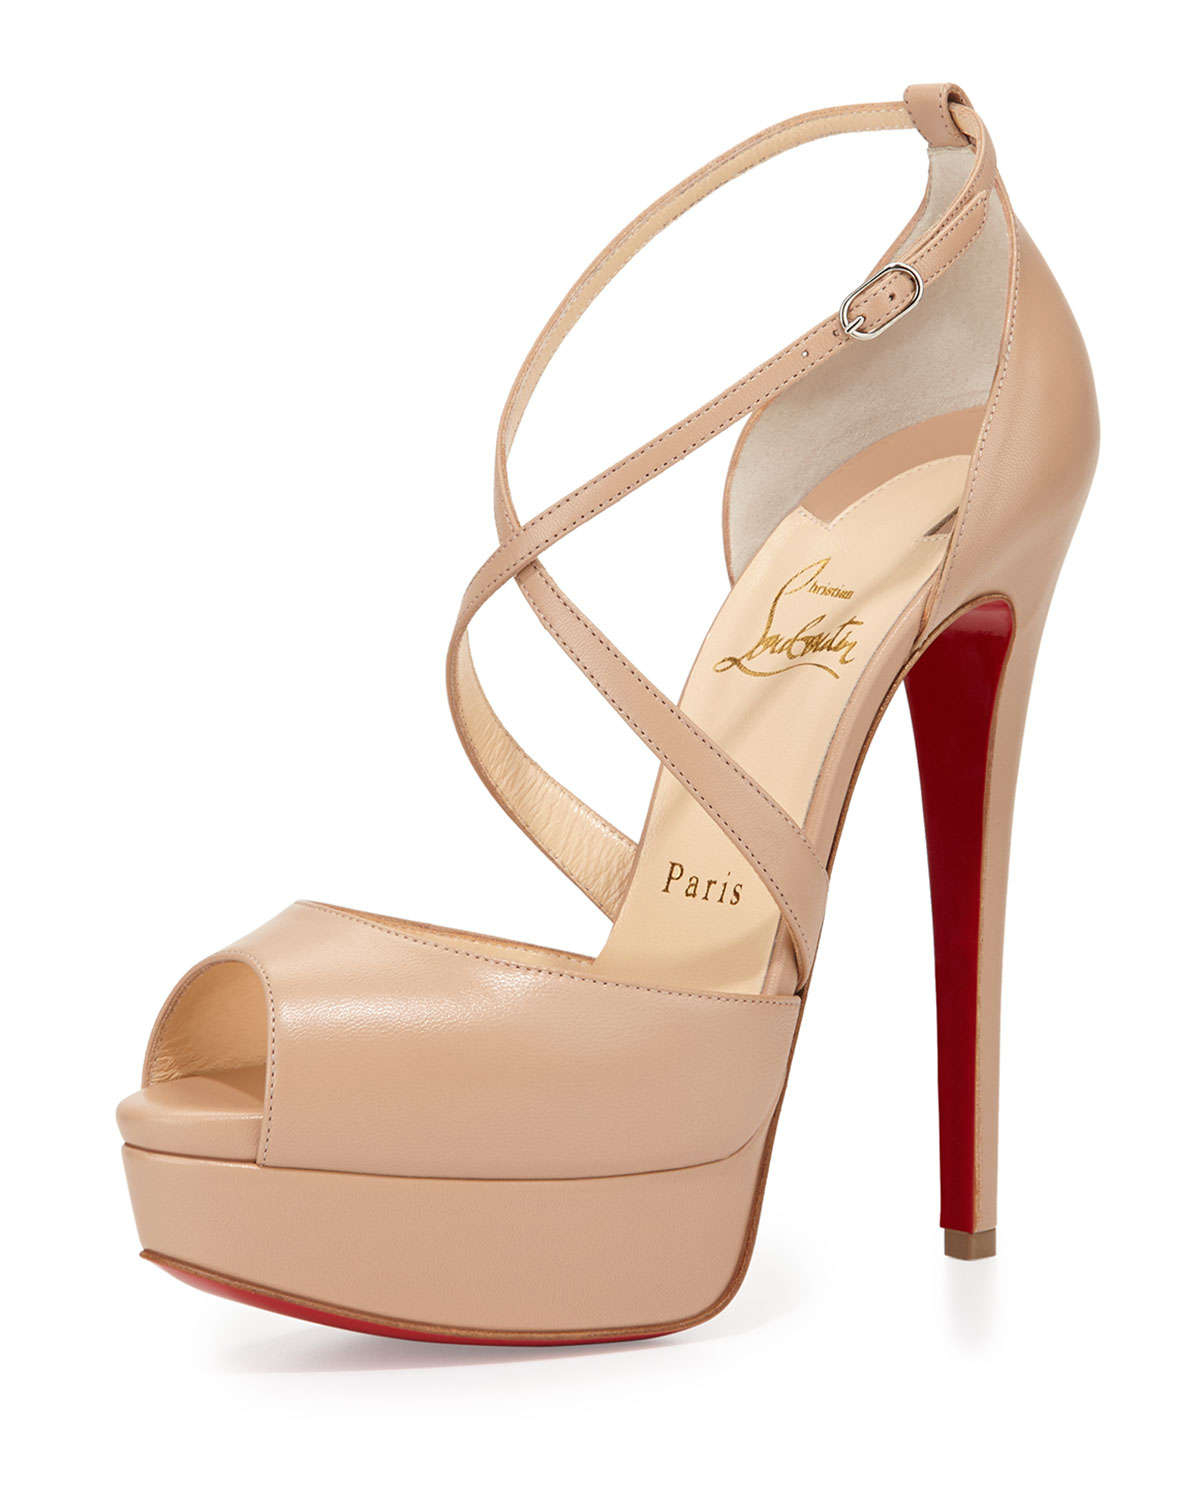 Christian Louboutin Platforms outlet